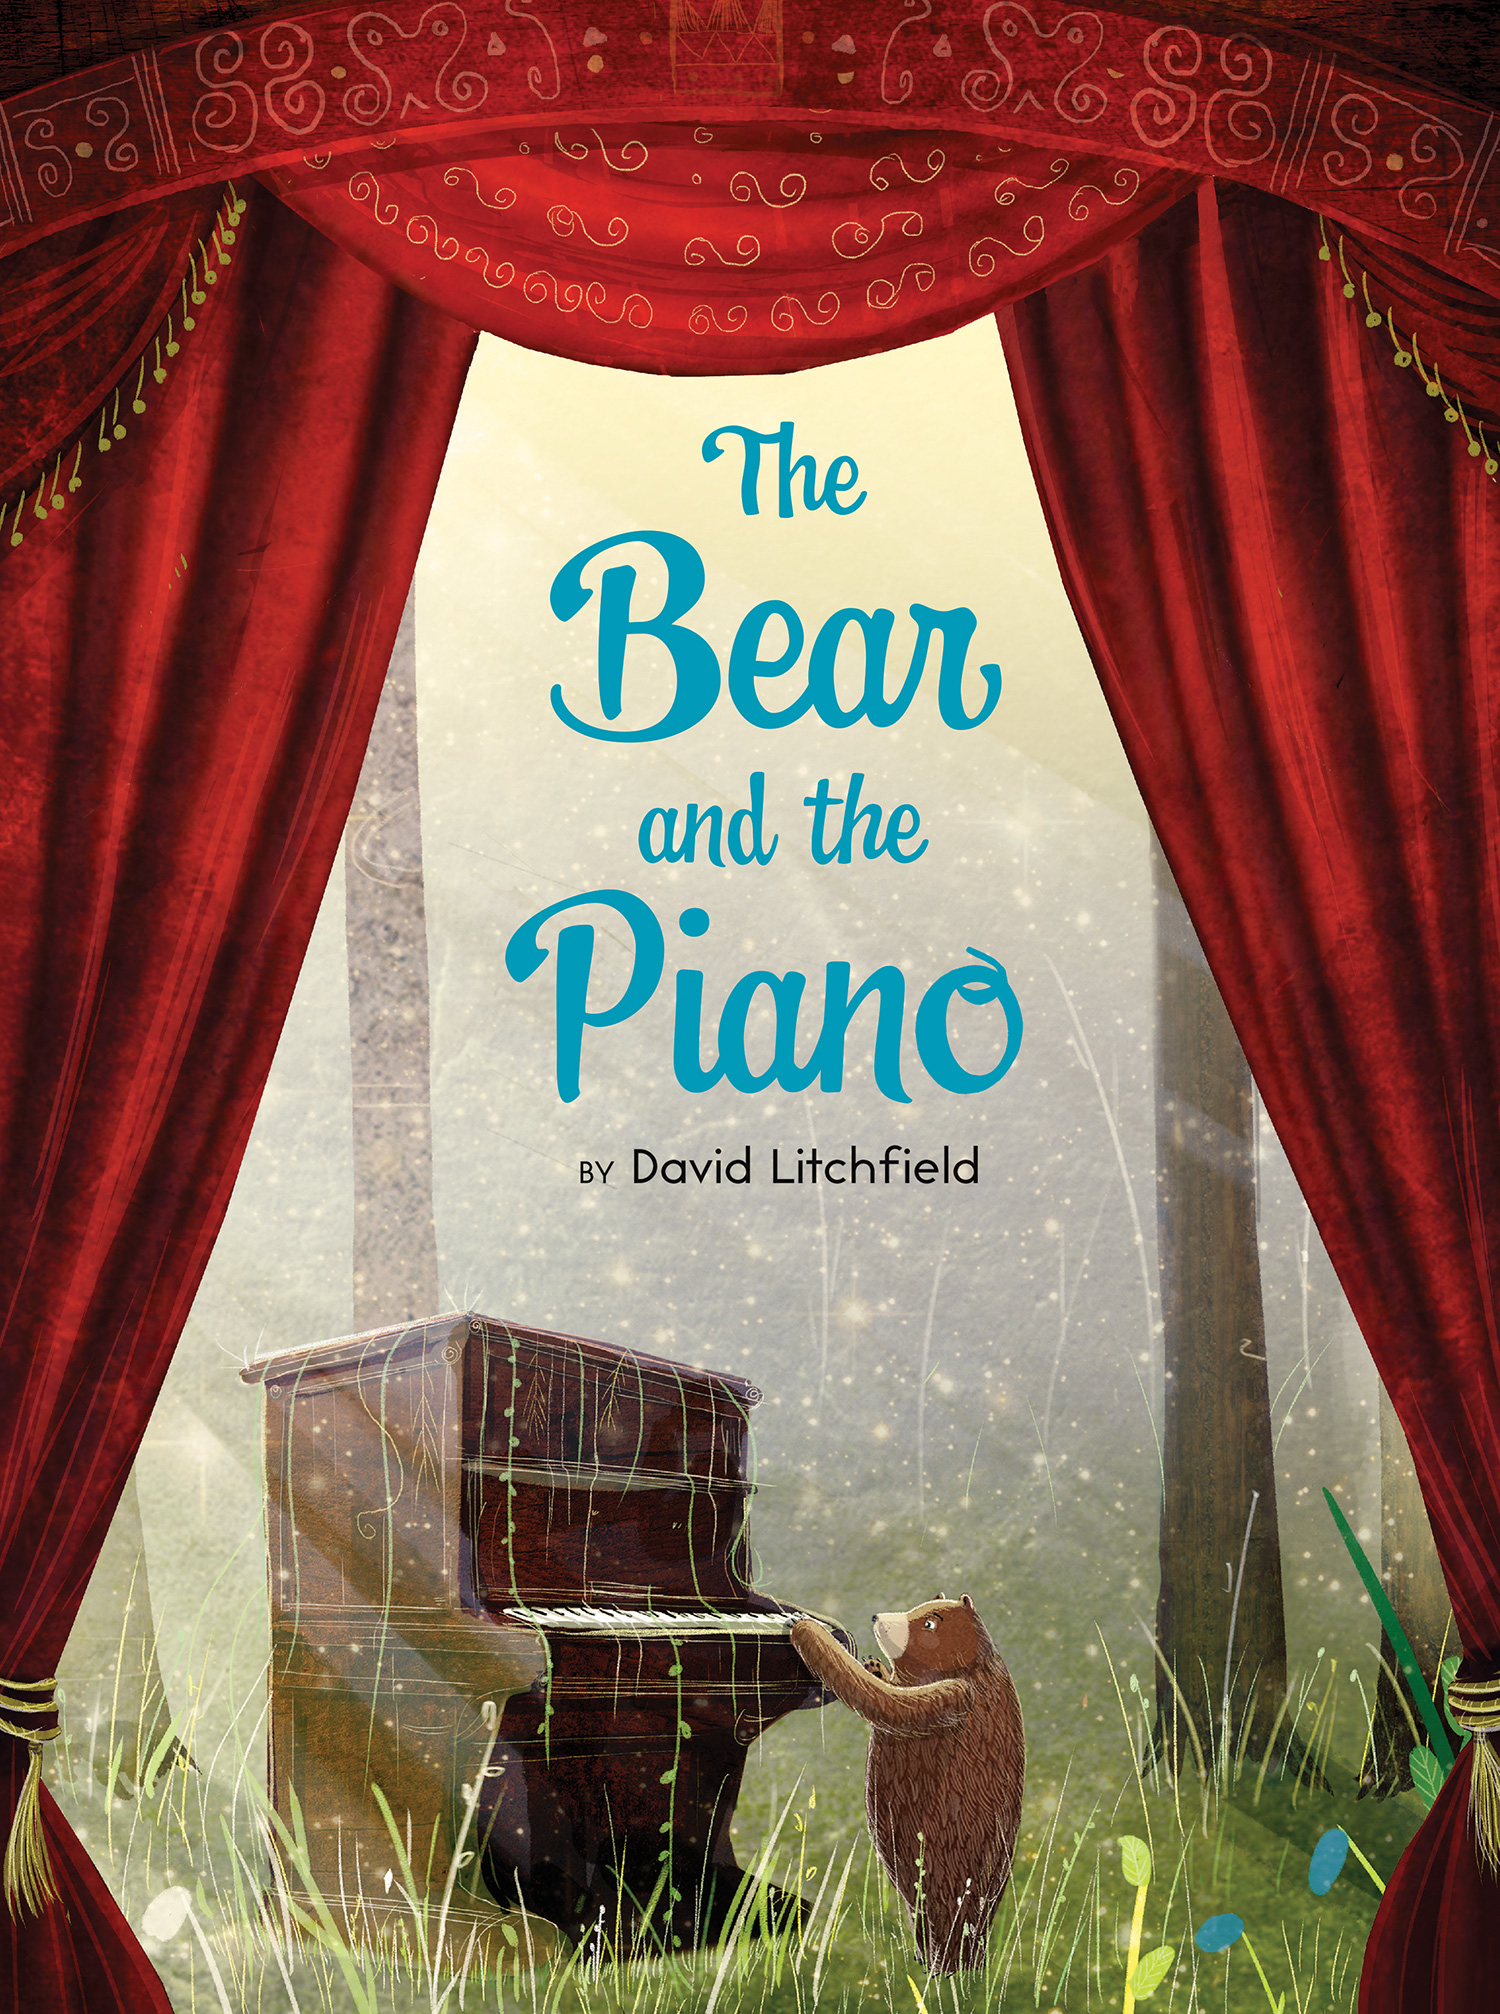 The Bear and the Piano-9780544674547